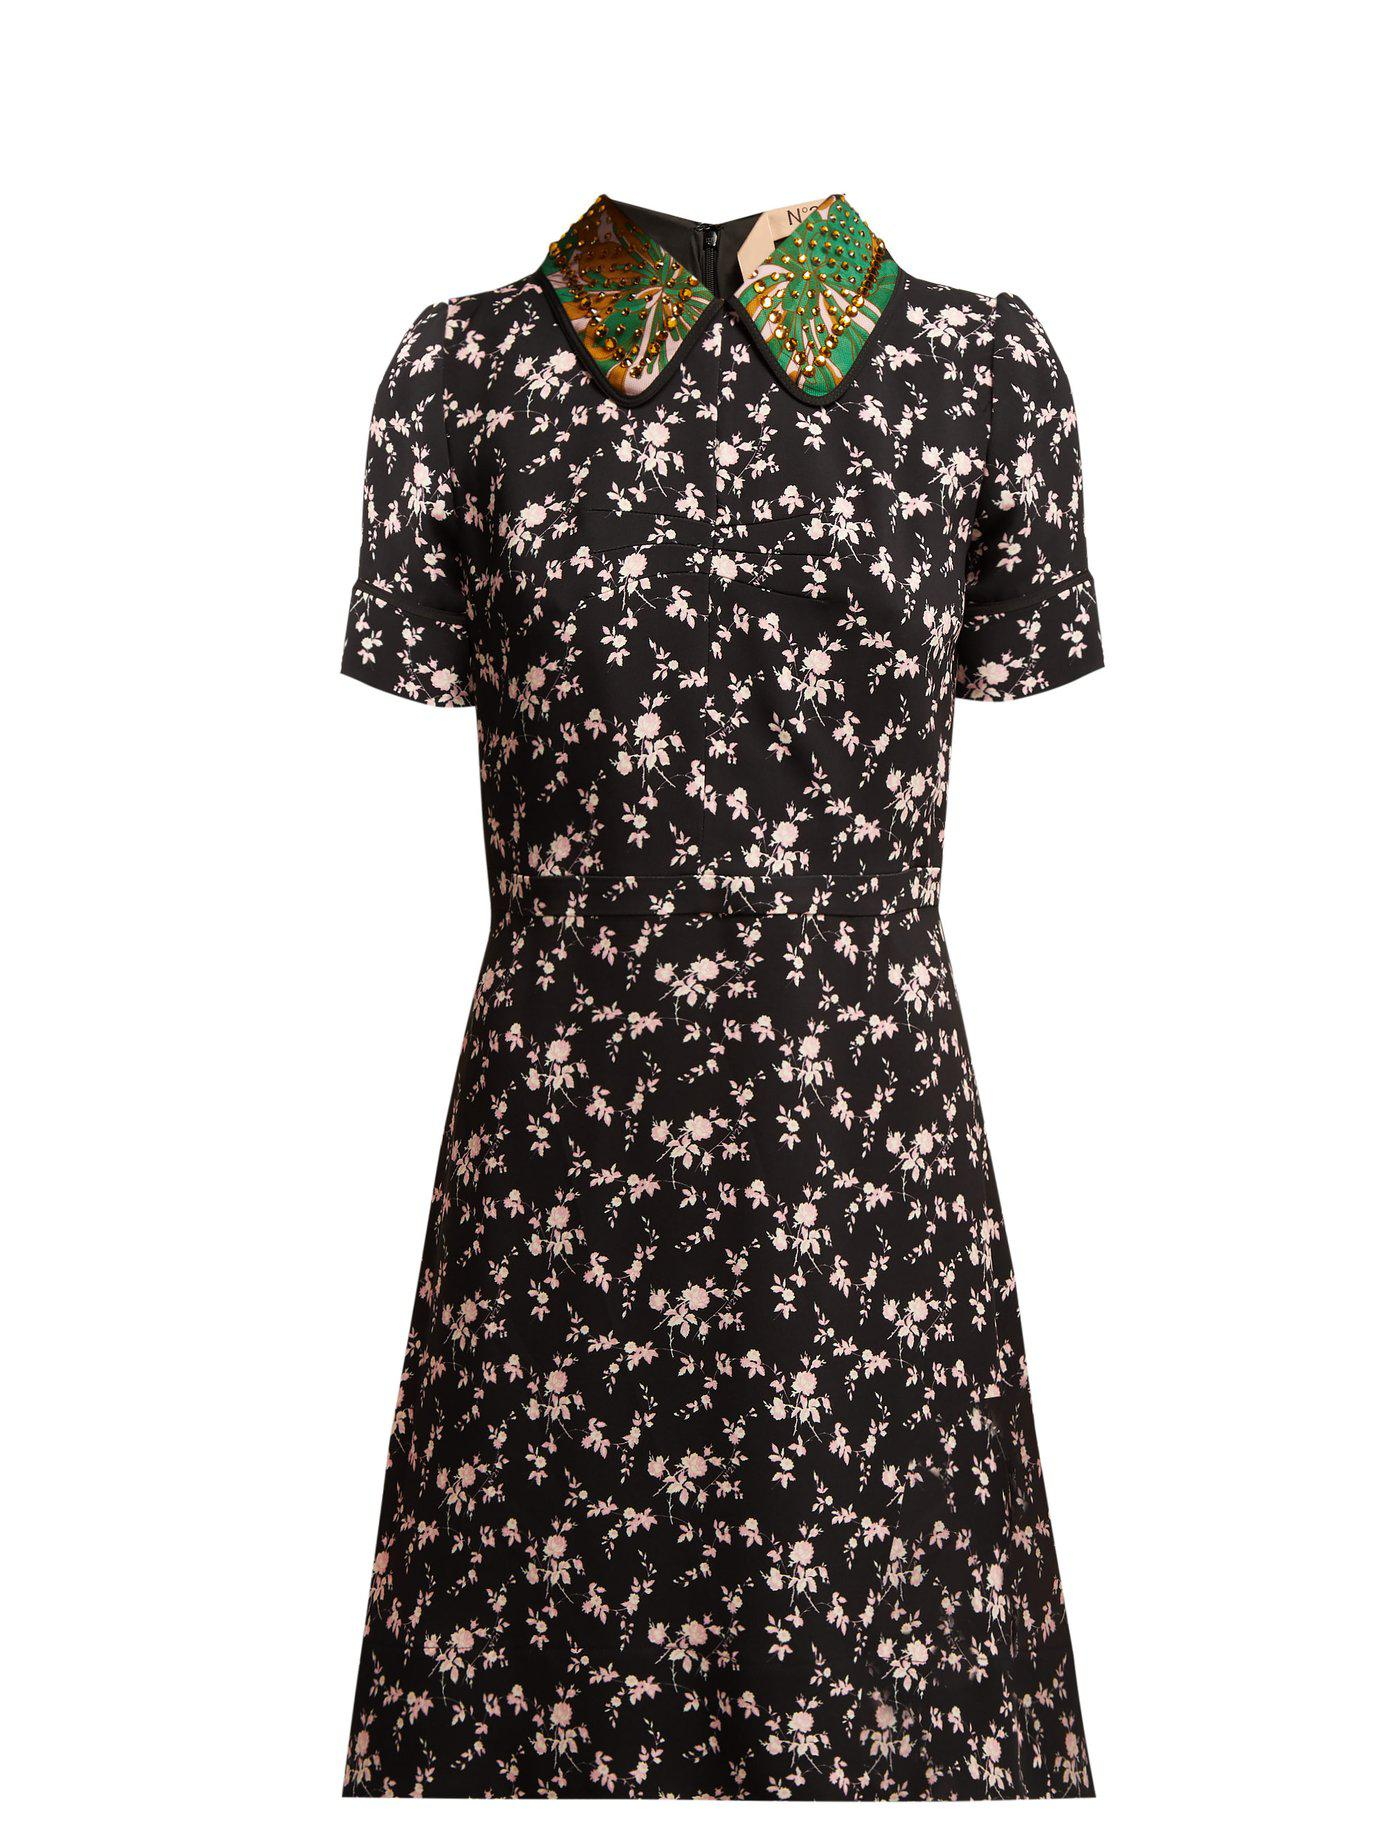 c6ba2b7b76 n21-black-multi-Stampa-Floral-Print-Dress.jpeg